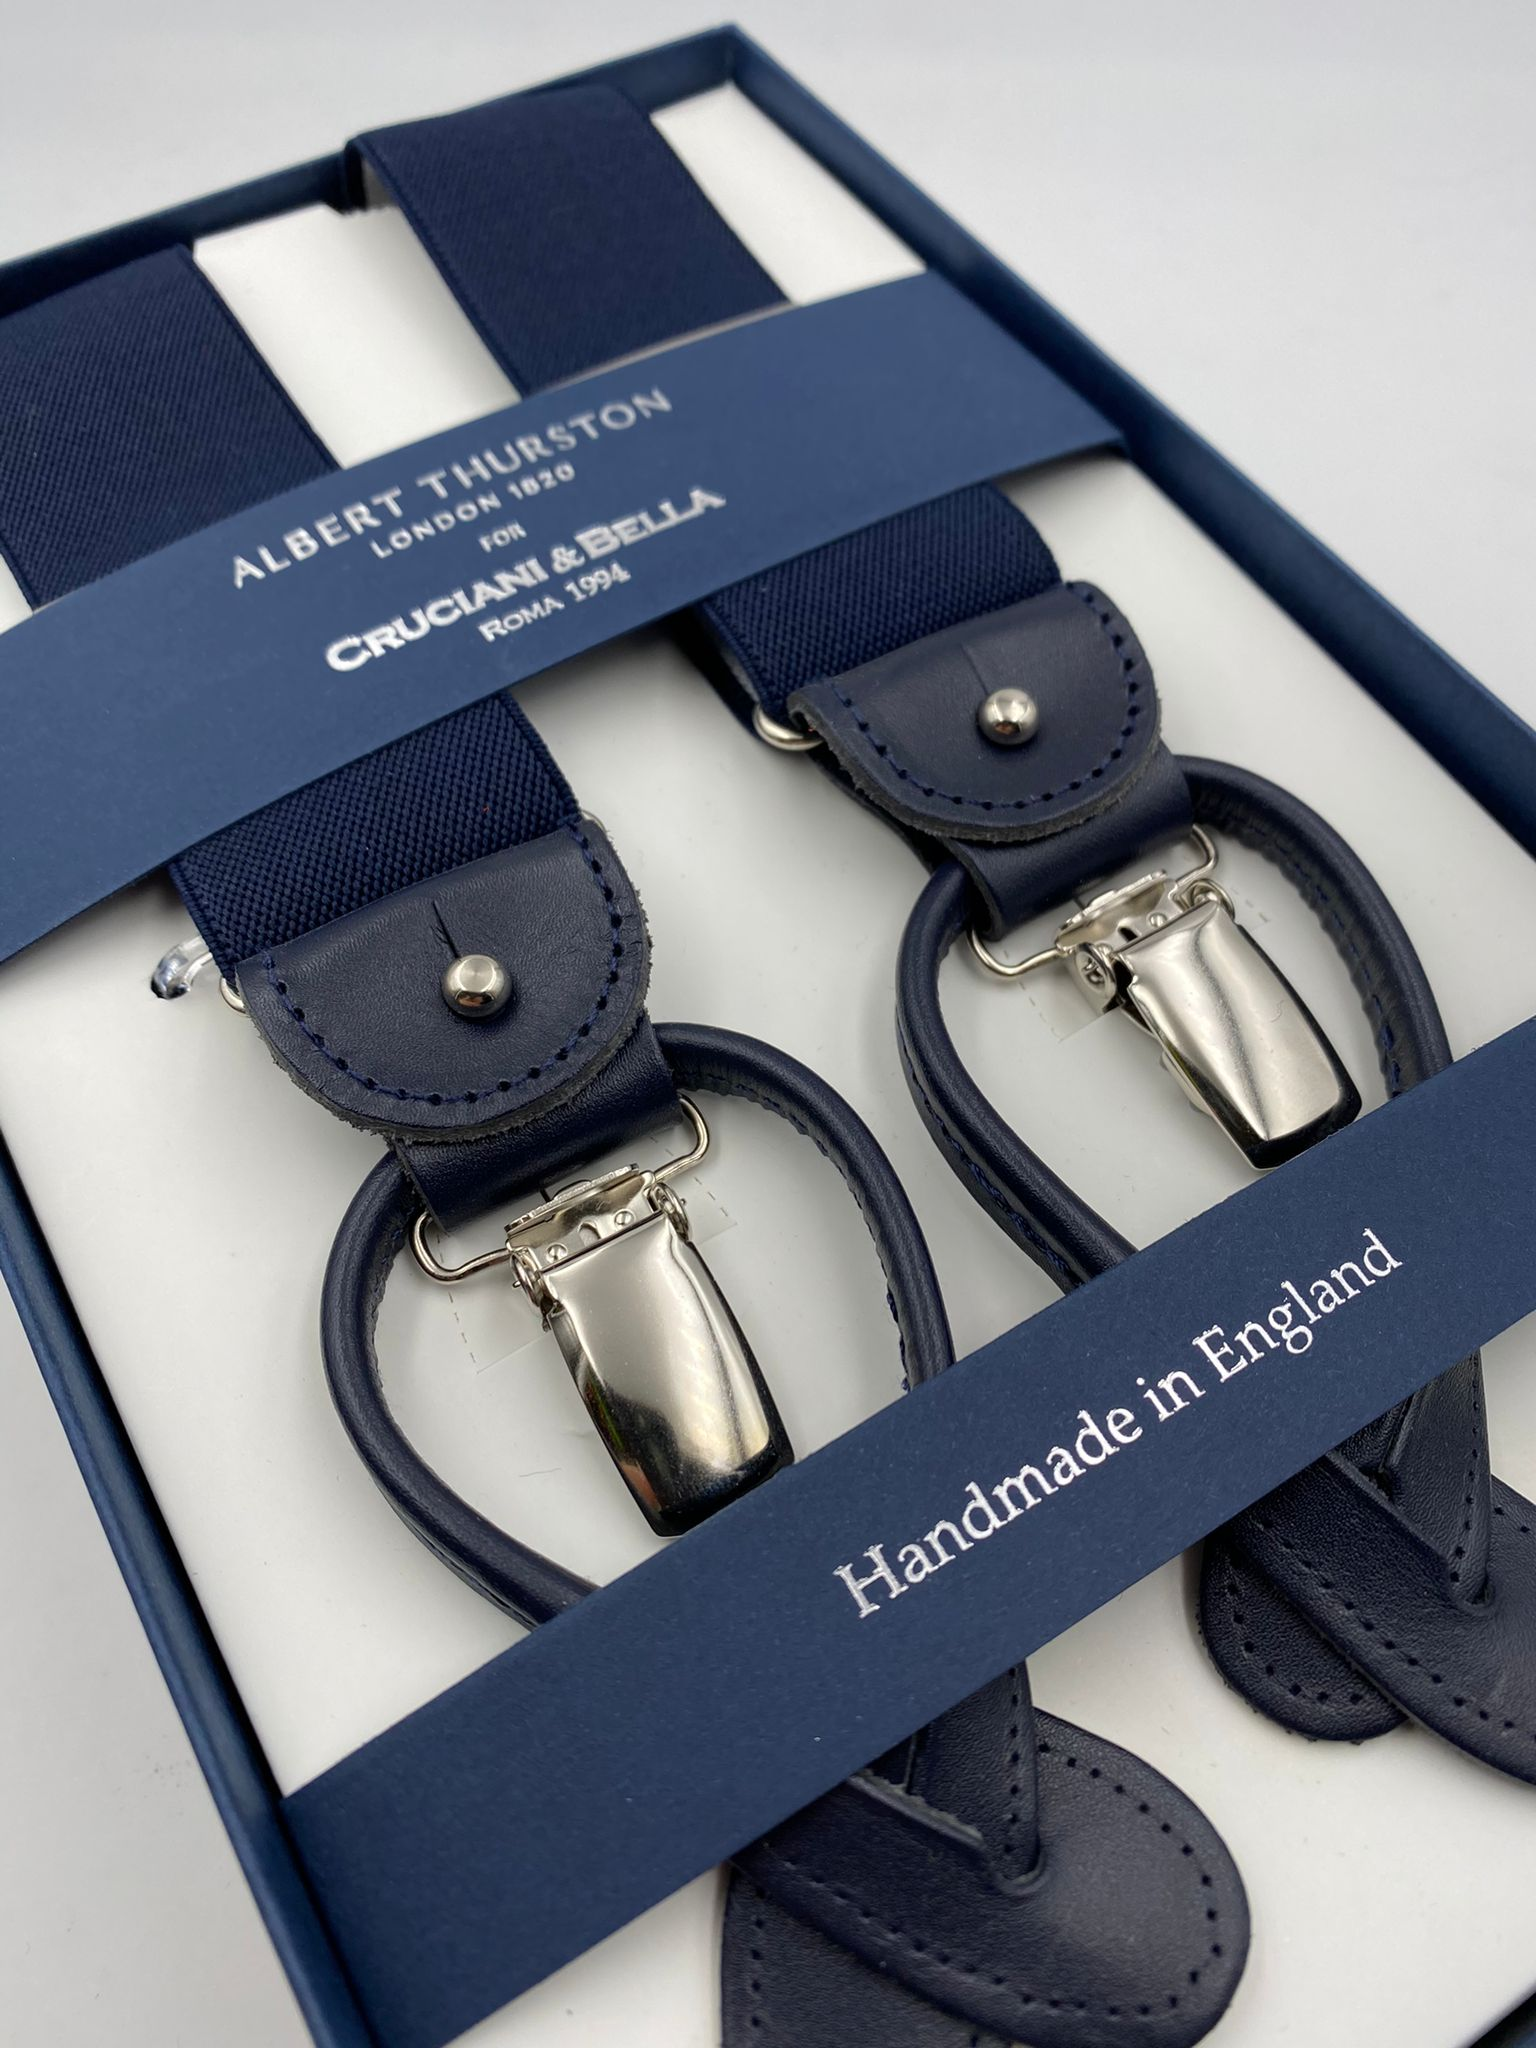 Albert Thurston for Cruciani & Bella Made in England 2 in 1 Adjustable Sizing 35 mm elastic braces Navy Blue Plain Y-Shaped Nickel Fittings #4886